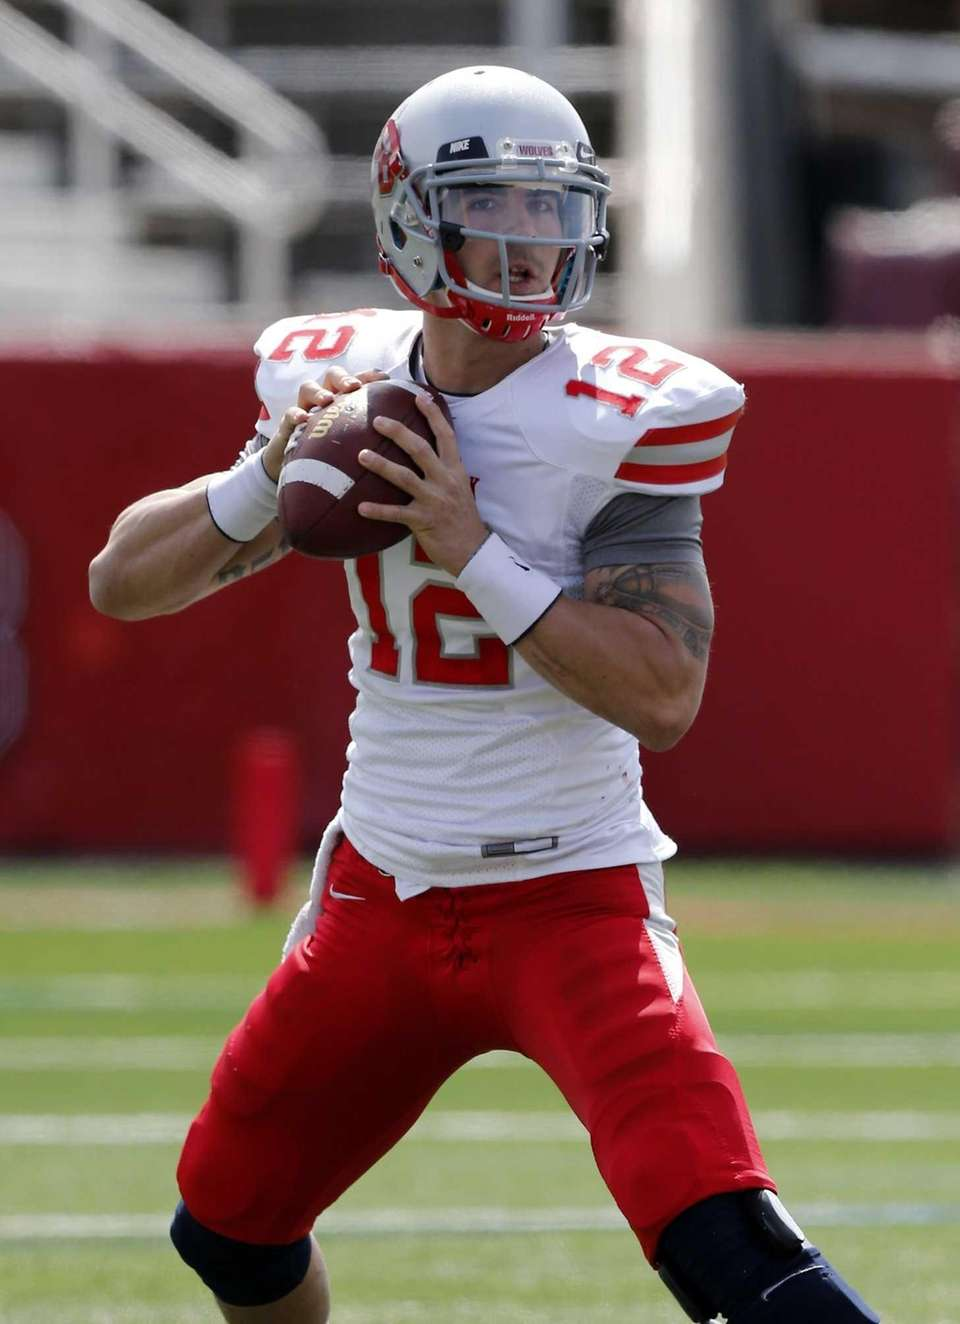 Stony Brook quarterback Lyle Negron (12) sets to